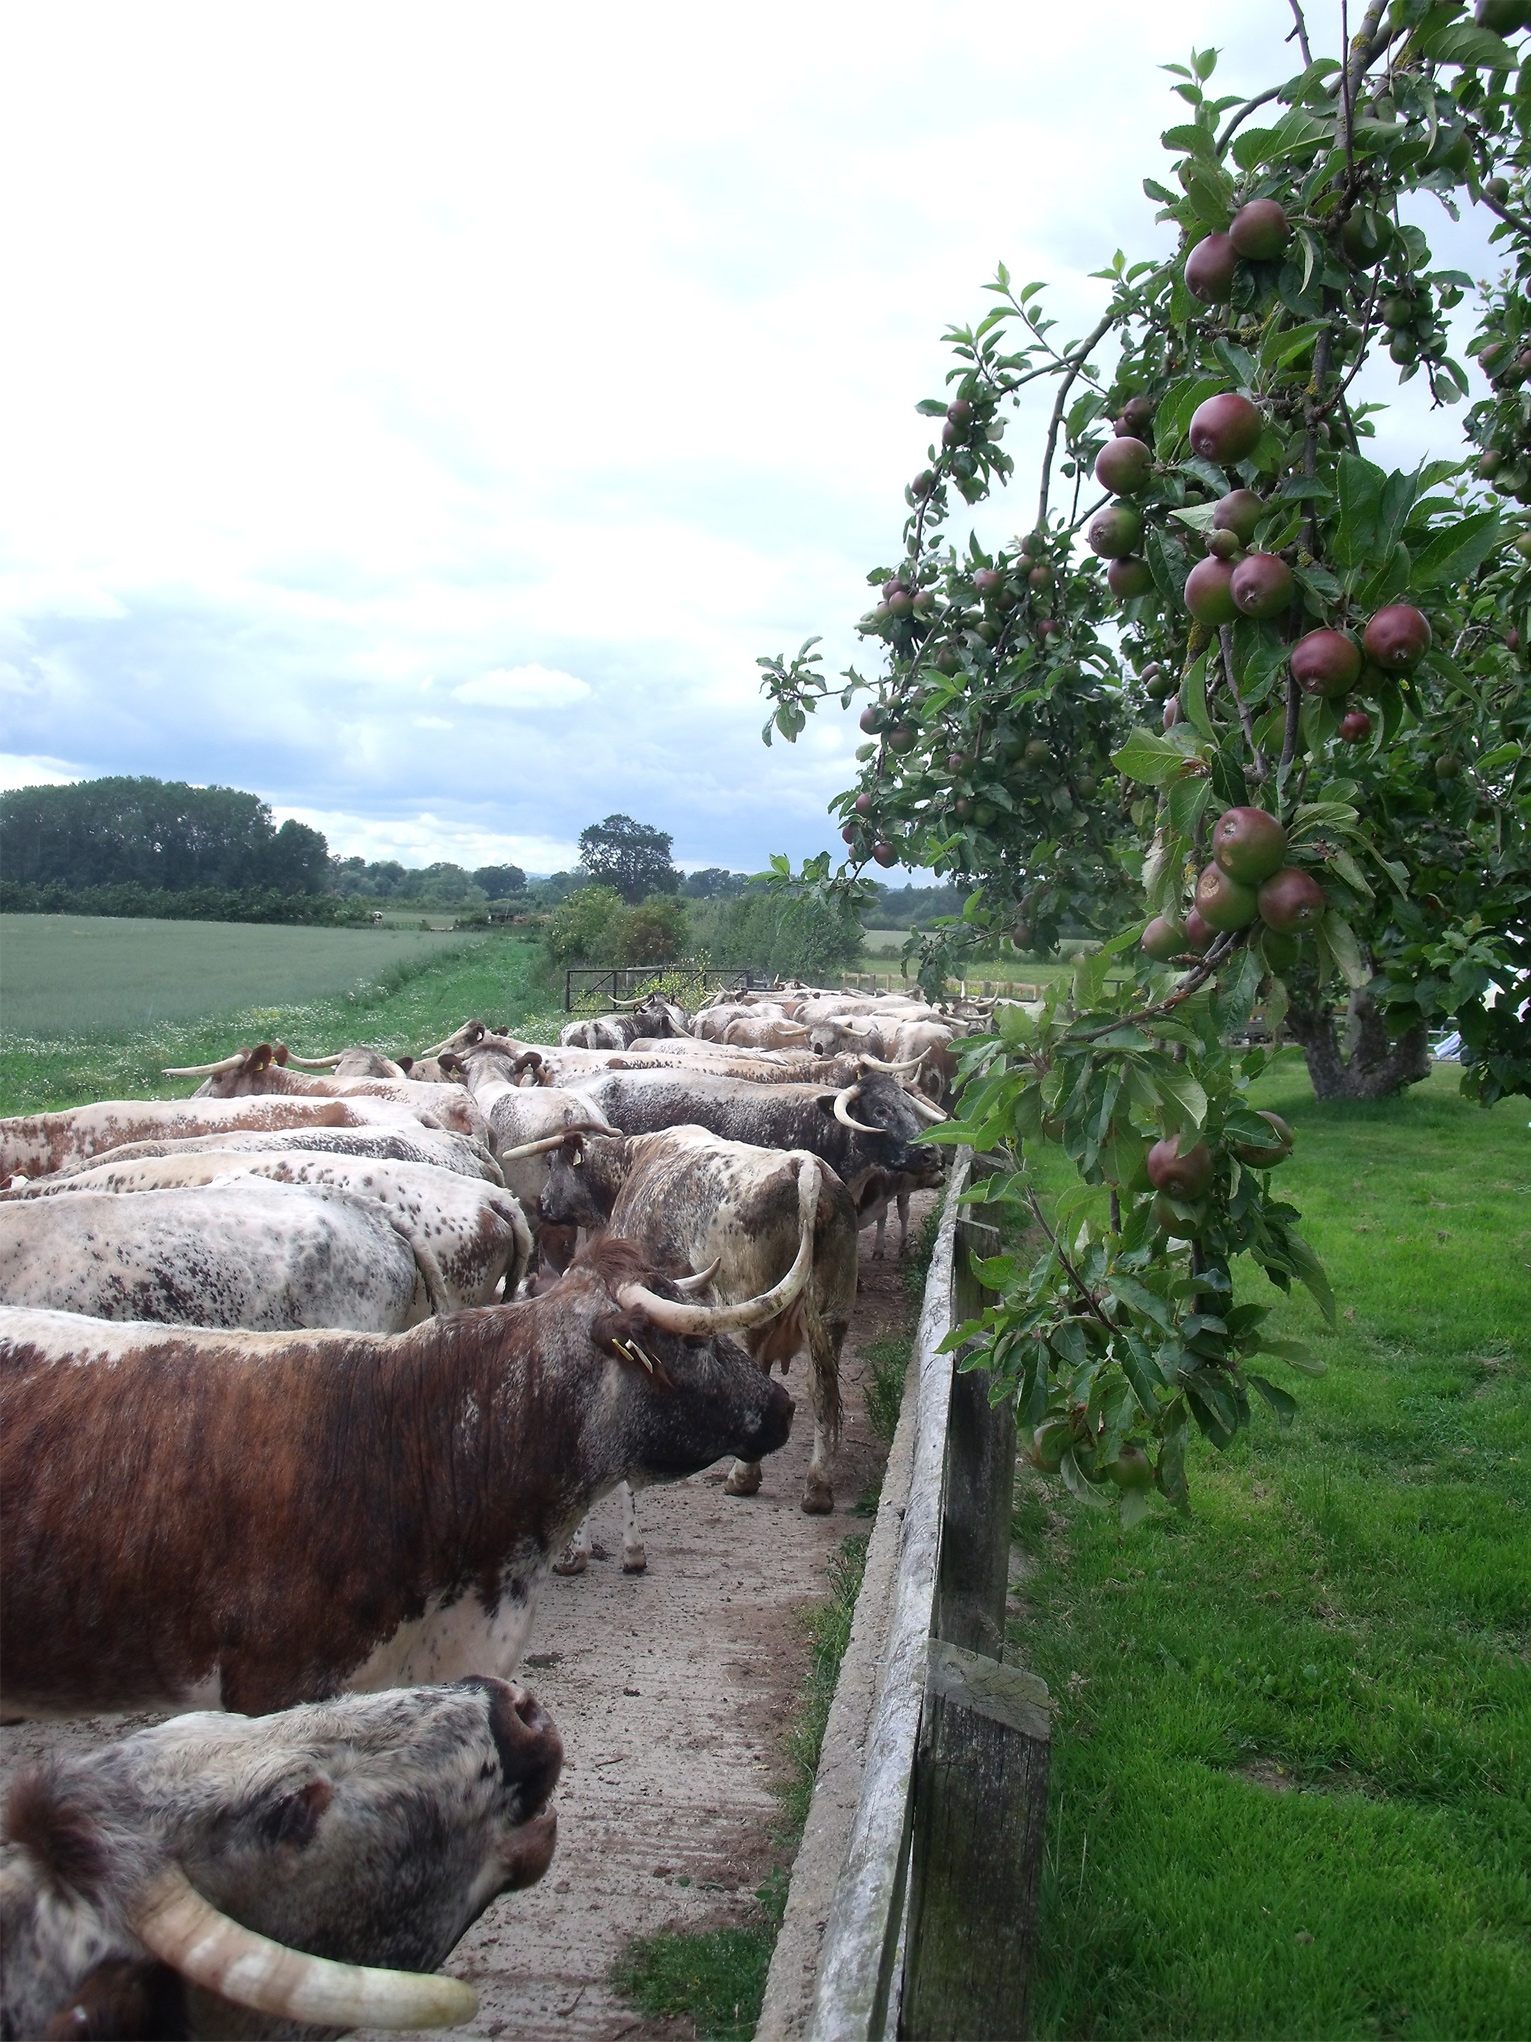 Longhorns and apple trees!